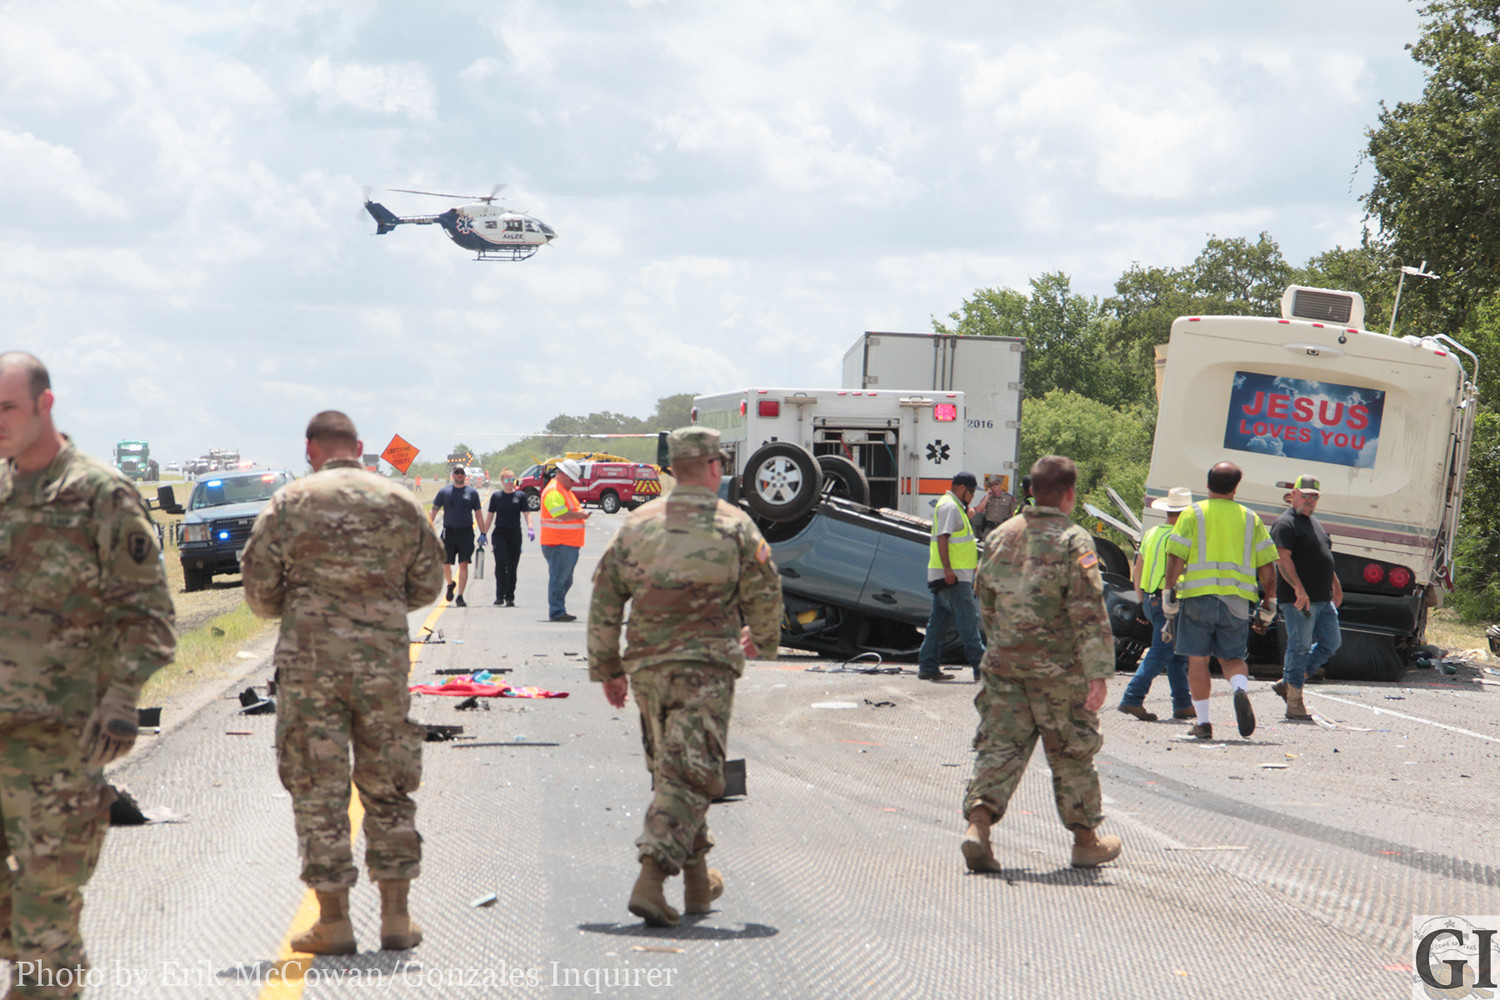 Members of the Texas National Guard's 442nd Engineering Company from Angleton are seen assisting at the scene of a major crash last week on I10 that took the lives of two occupants of an RV. The soldiers were headed home from a weekend of training and were the first on scene to render aid and support to the victims.